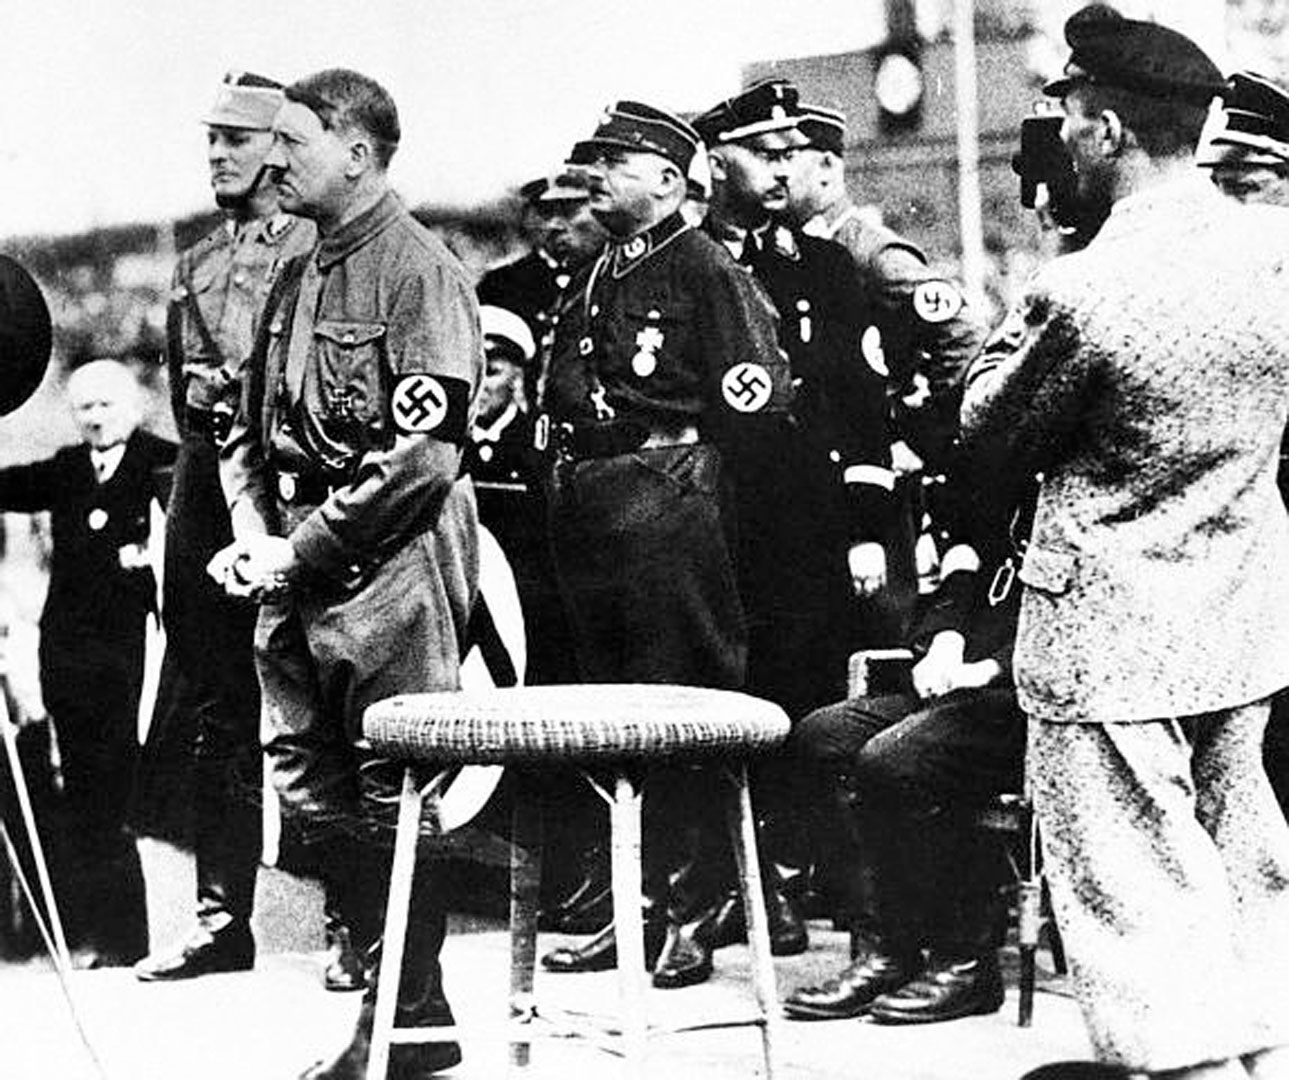 Hitler Addressing Nazi Units In 1933 With Captains And Brown Shirt Chiefs Roehm And Himmler